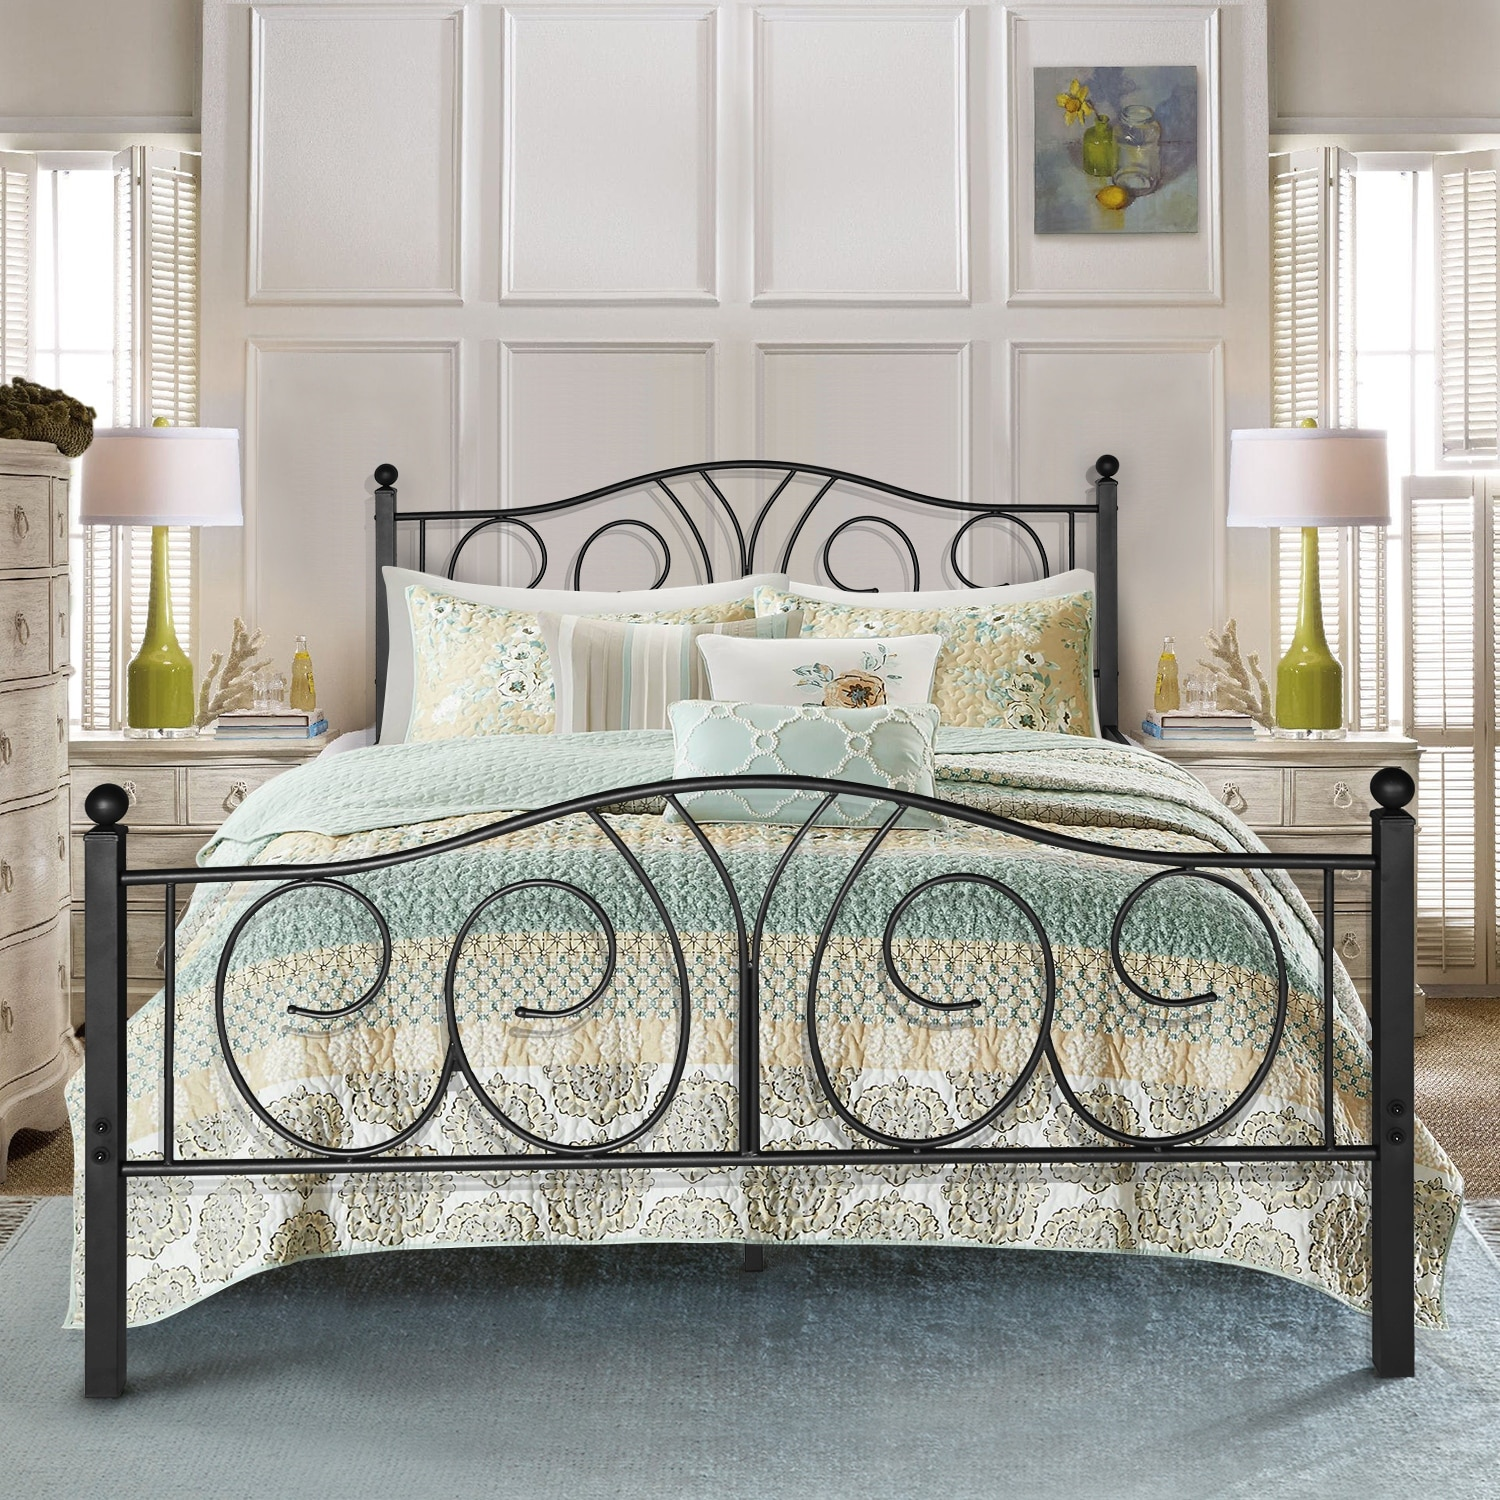 Picture of: Vintage Graceful Classic Scroll Black Iron Bed By Vecelo Twin Full Queen Size Overstock 30100802 Twin